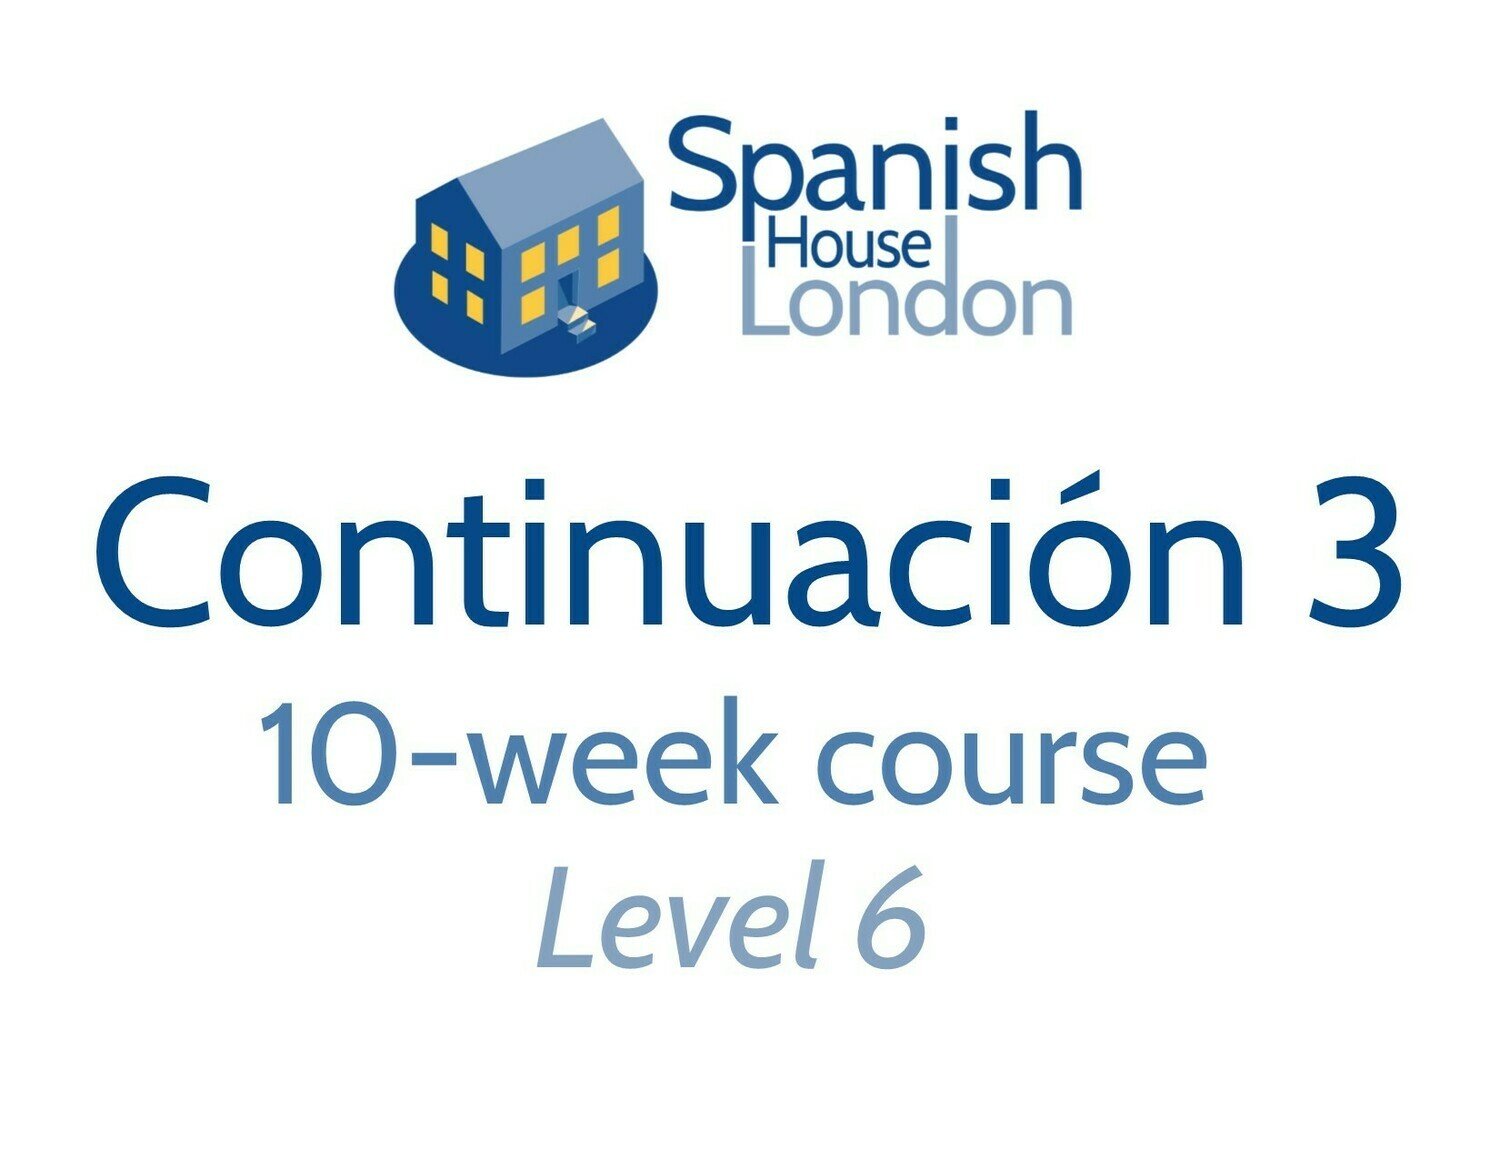 Continuacion 3 Course starting on 16th October at 6pm in Euston